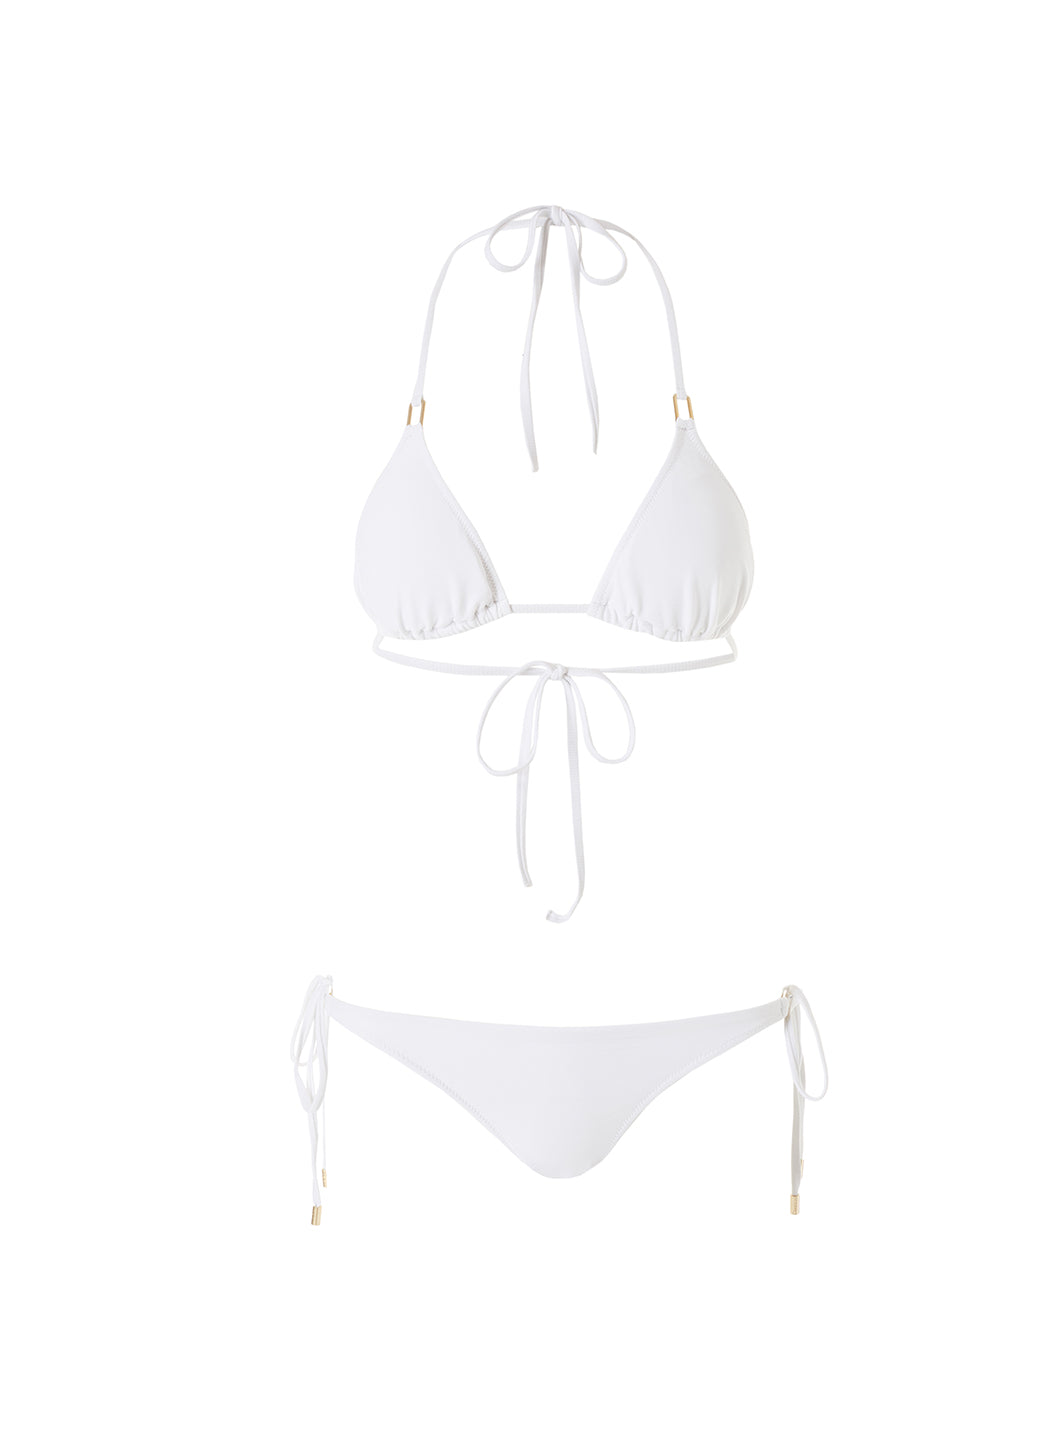 Exclusive Cancun White Ribbed Classic Triangle Bikini - Melissa Odabash Triangle Bikinis